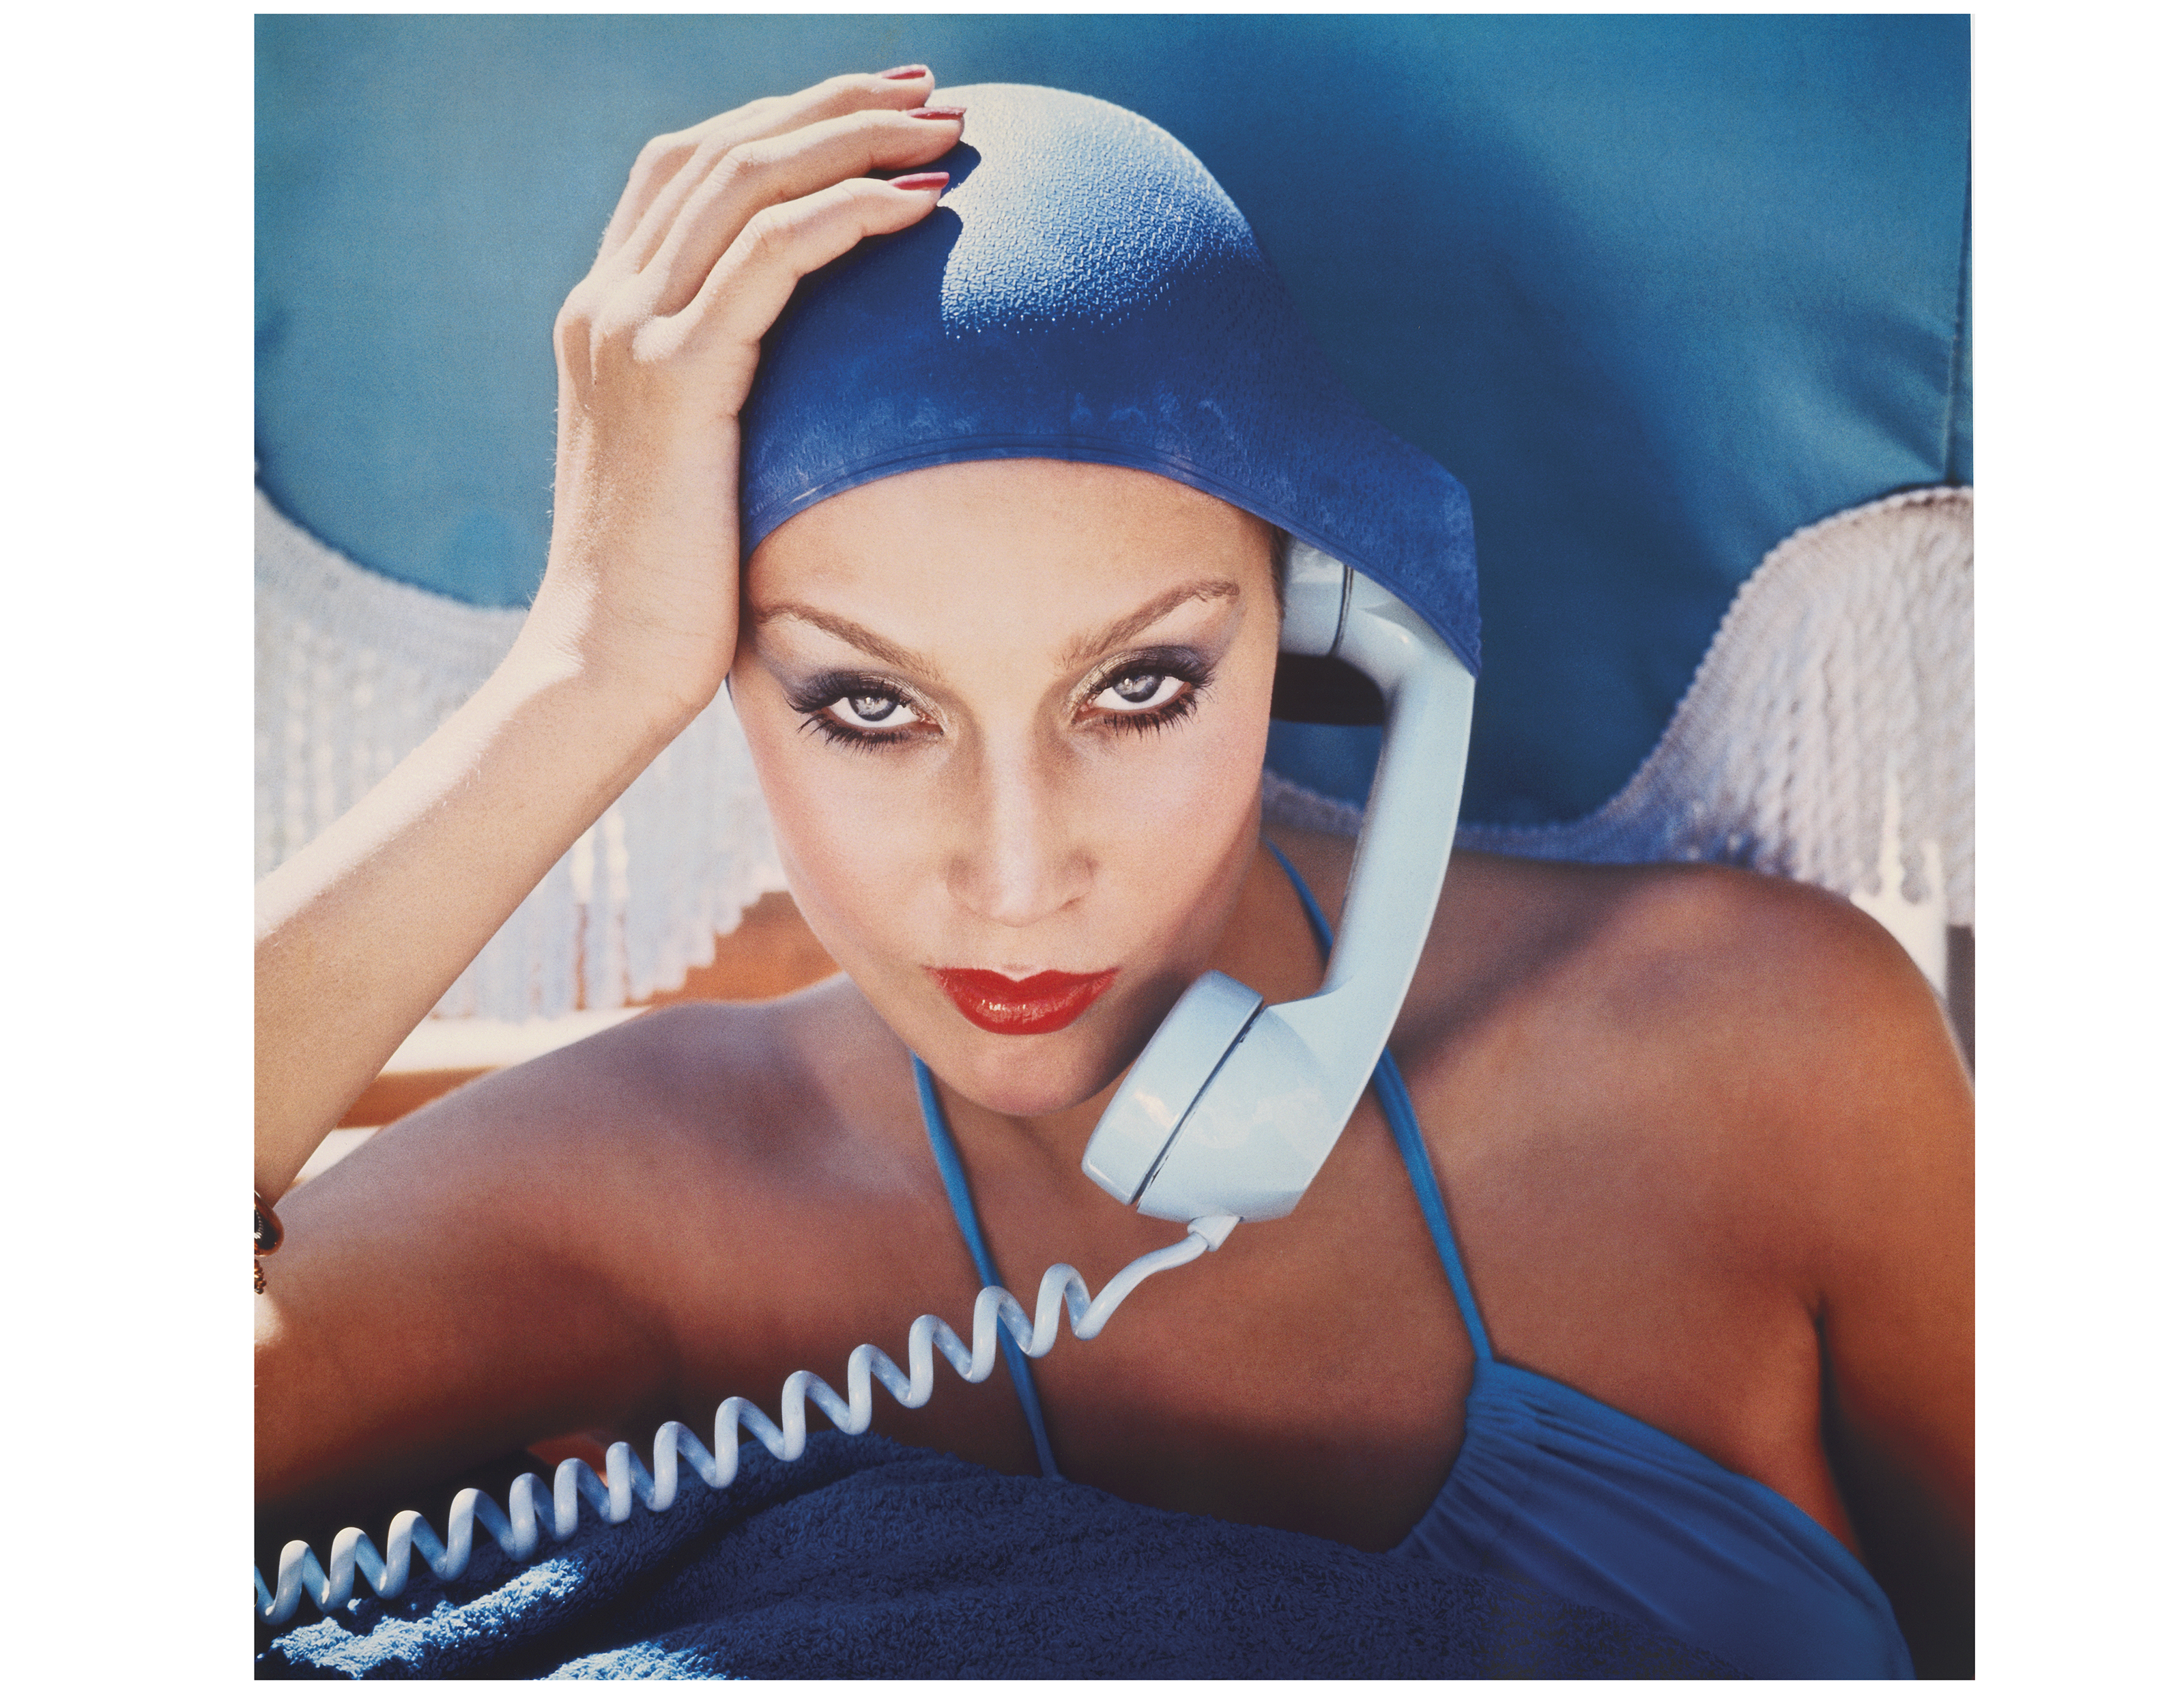 Norman Parkinson (1913-1990), Jerry Hall, Jamaica, 1975. Sheet 48 x 48 in (122.8 x 122.8 cm). Estimate $7,000-9,000. This lot is offered in  Fashion Photo, 2-11 December 2019, Online